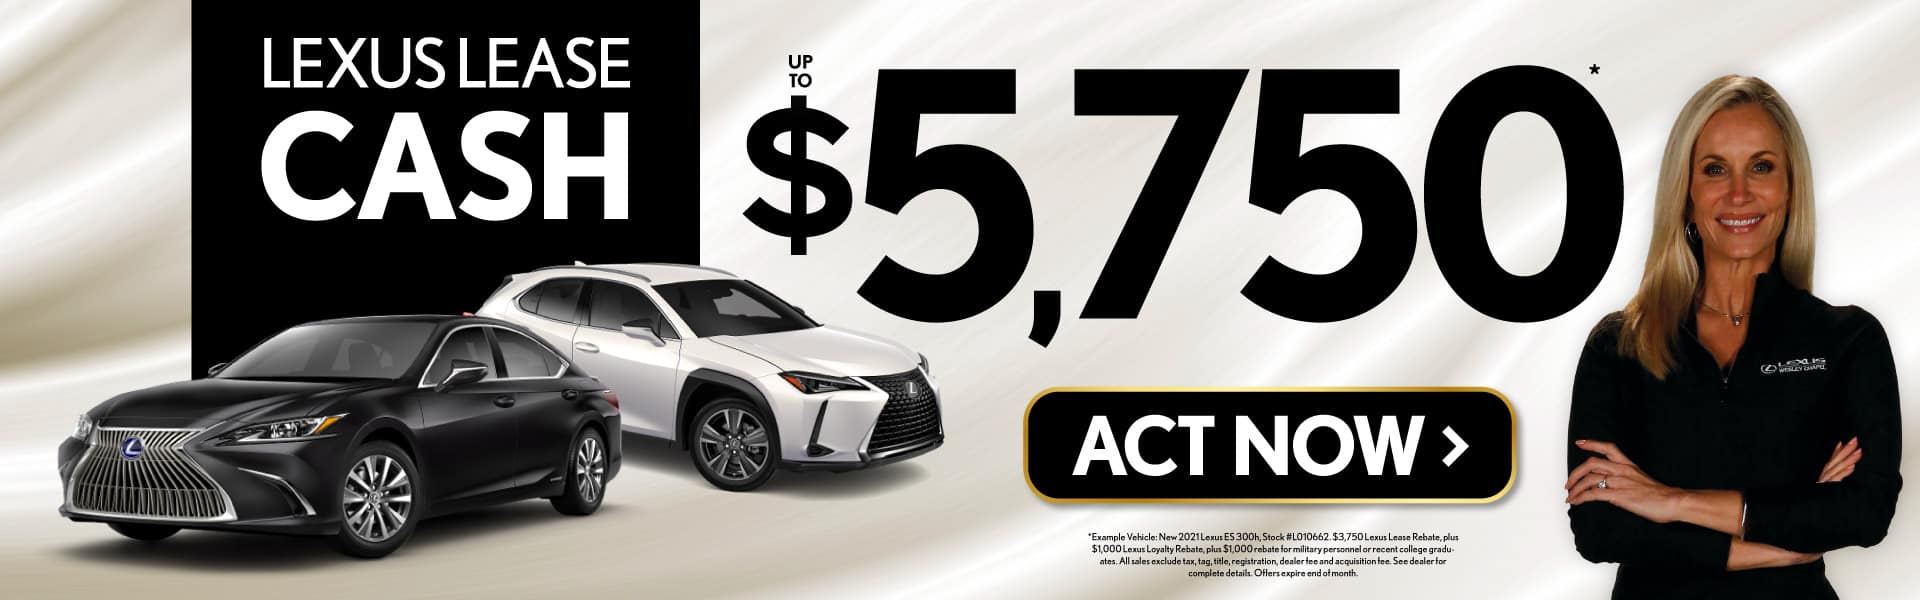 Lexus Lease Cash up to $5,750 - ACT NOW